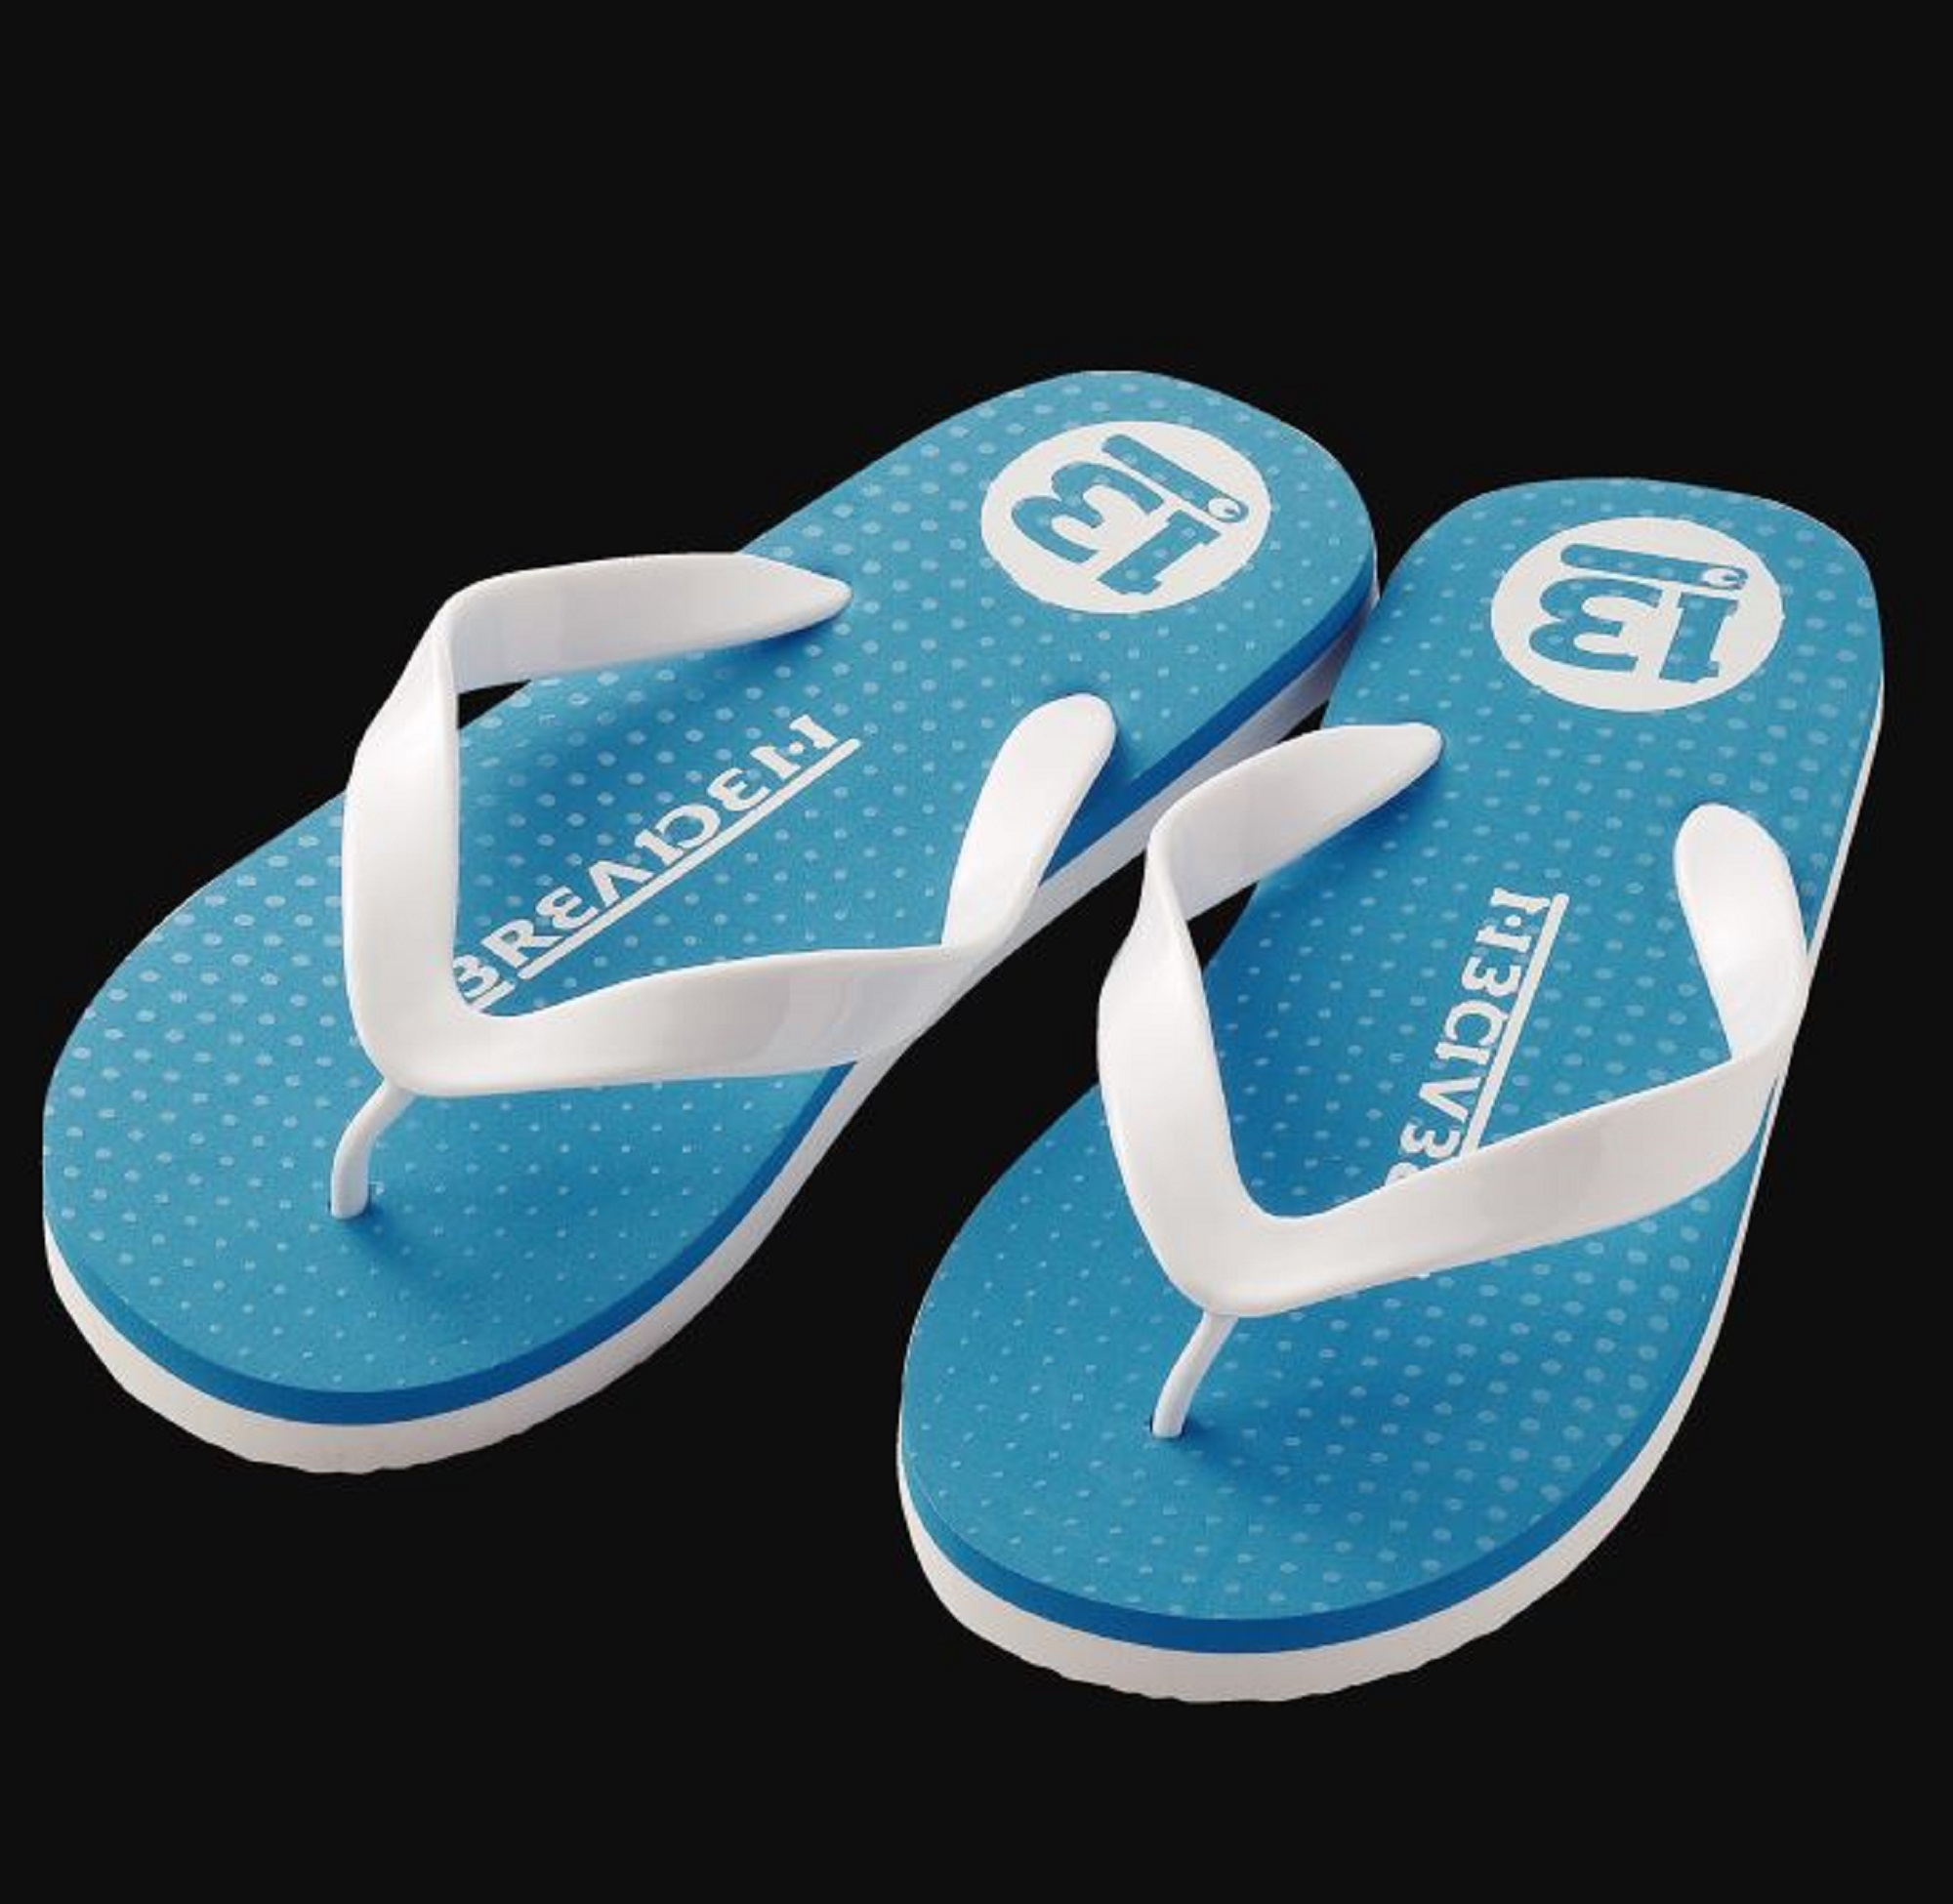 Breaden Beach Sandals Size 28cm 02 (7386)